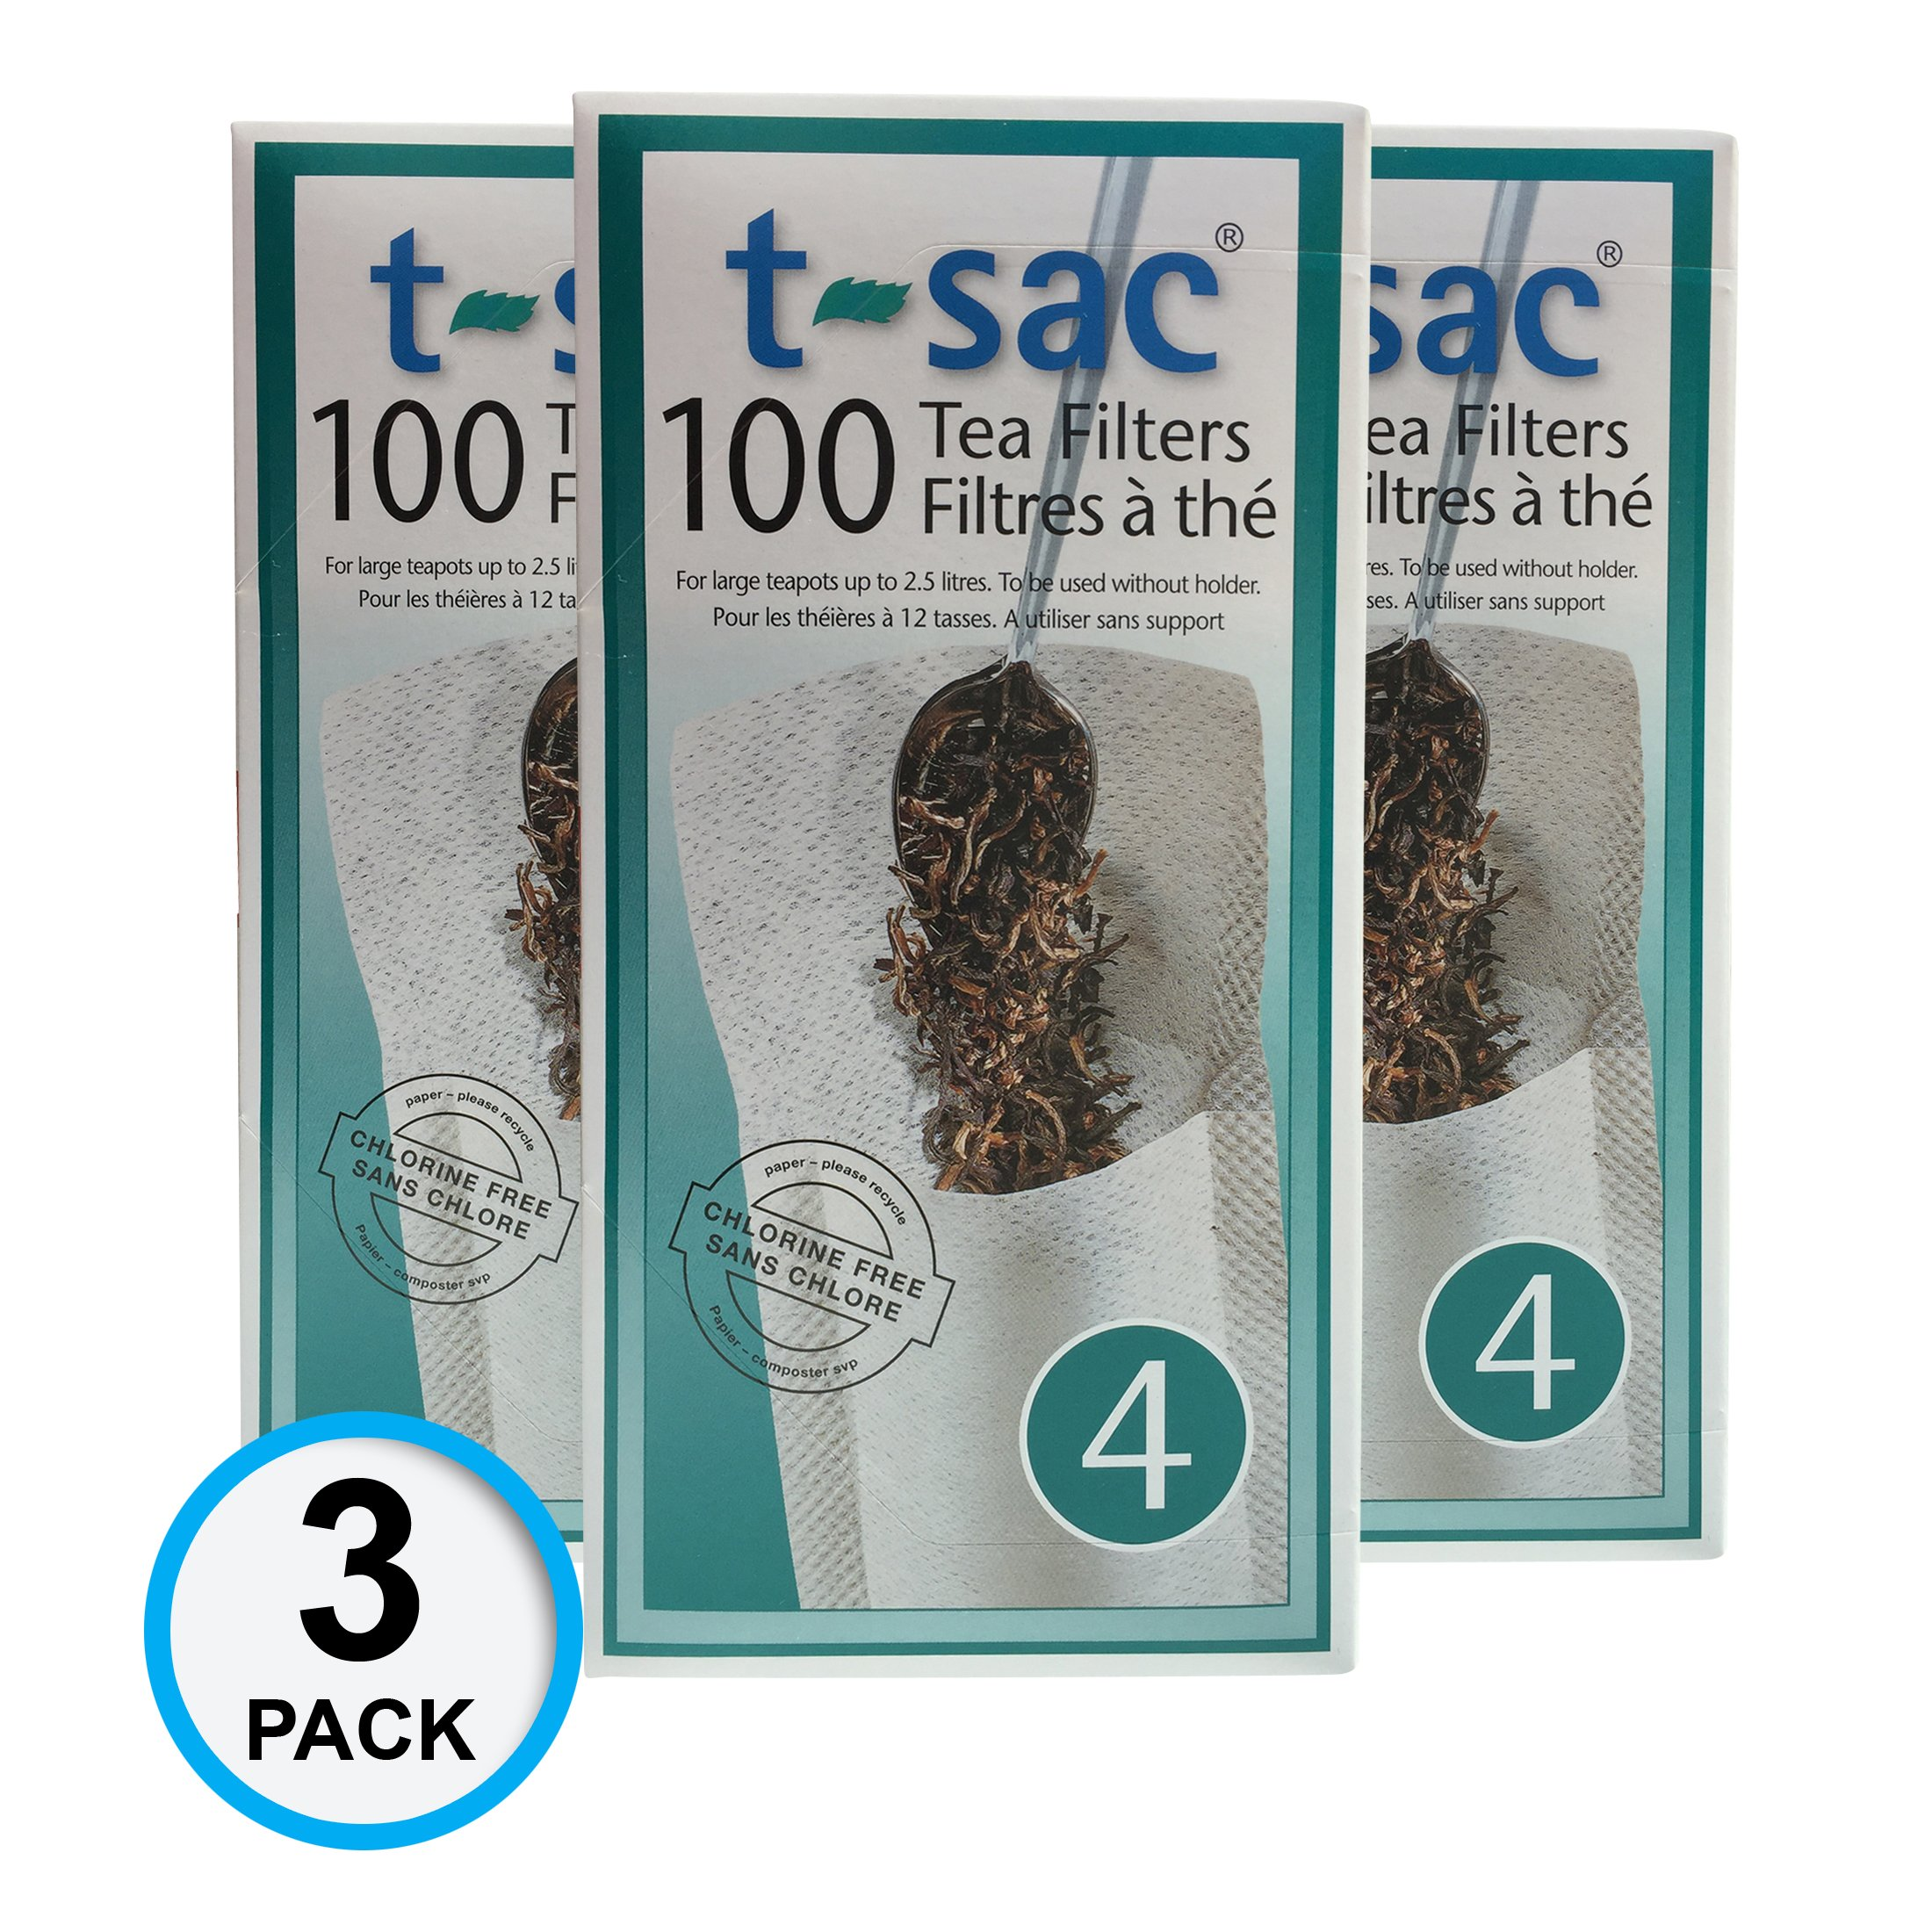 Modern Tea Filter Bags, Disposable Tea Infuser, Size 4, Set of 300 Filters - 3 Boxes - Heat Sealable, Natural, Easy to Use Anywhere, No Cleanup – Perfect for Teas, Coffee & Herbs - from Magic Teafit